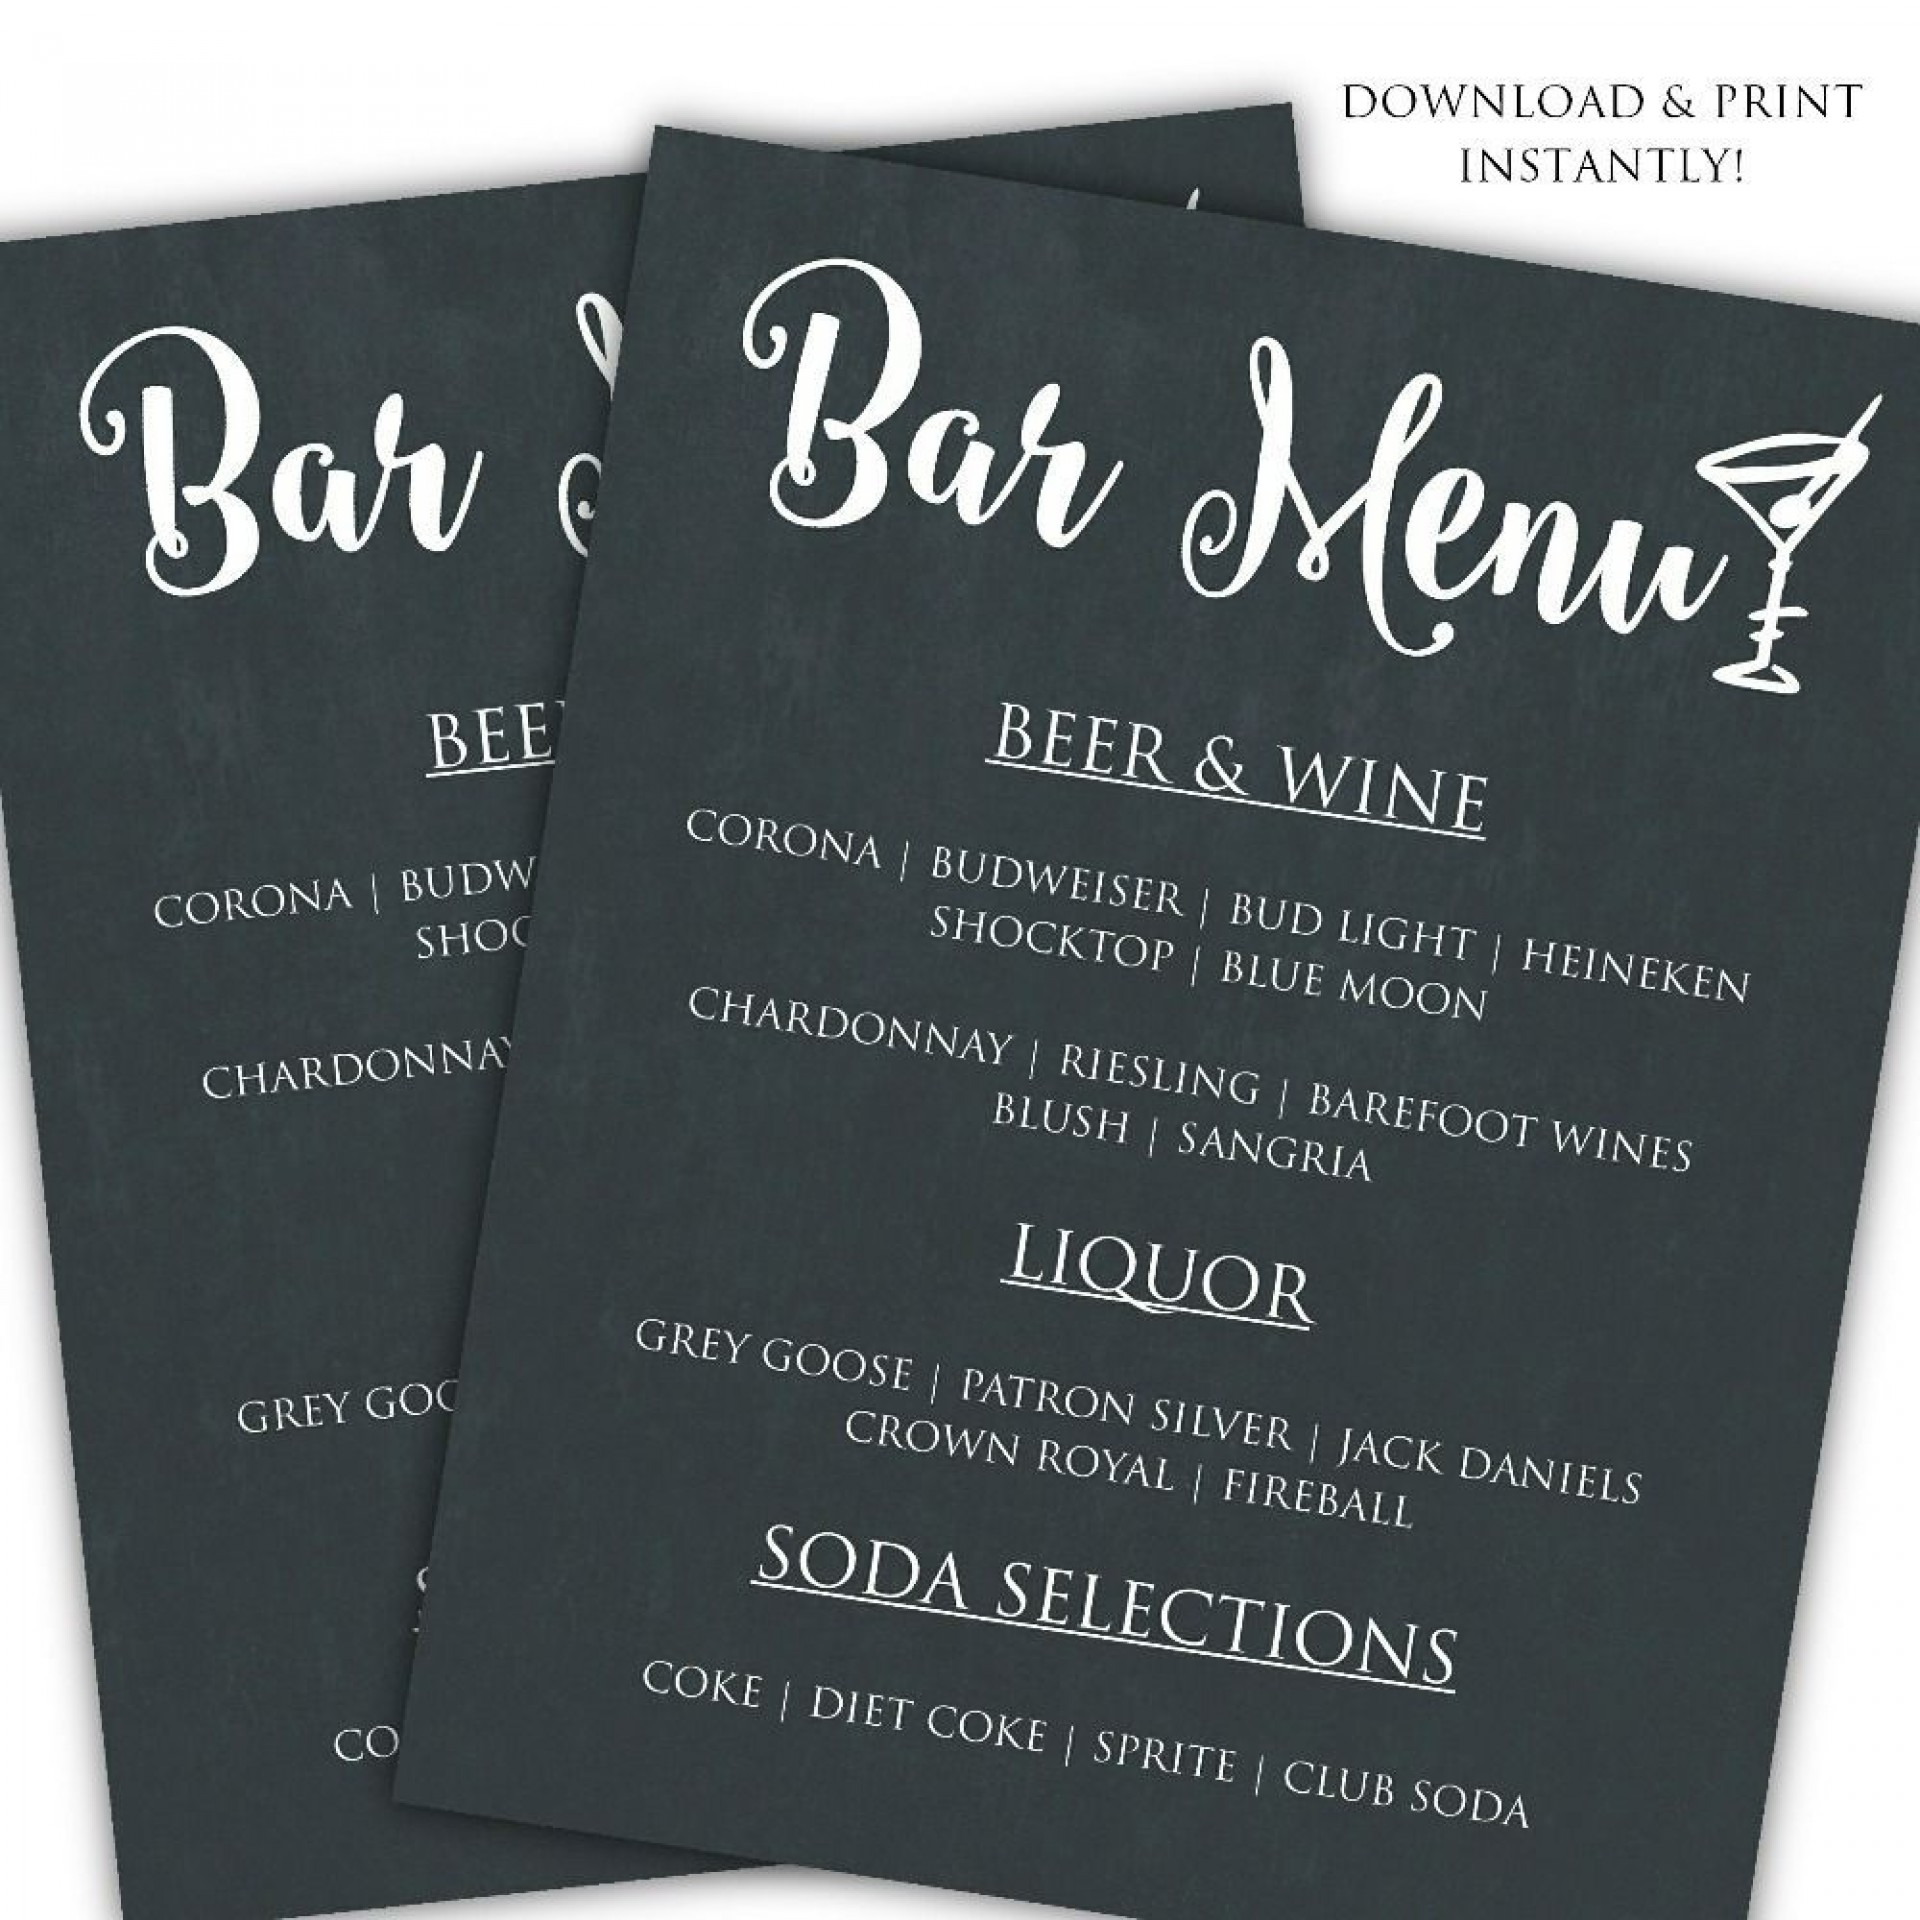 001 Unforgettable Bar Menu Template Free Concept  Download Snack1920